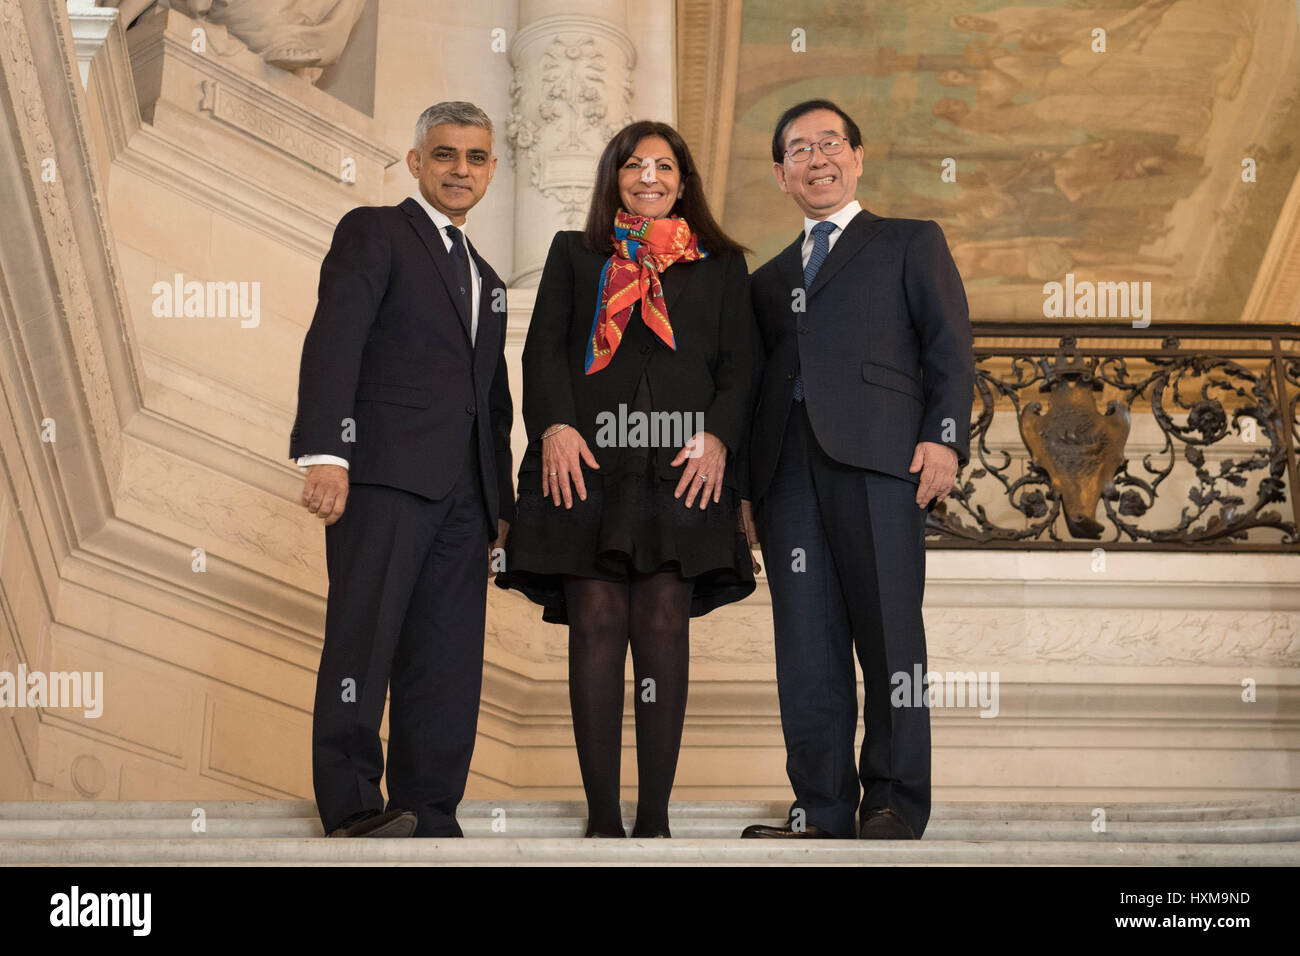 Mayor of London Sadiq Khan attends an air quality event with Mayor Anne Hidalgo and Mayor of Seoul, Park Won-soon - Stock Image